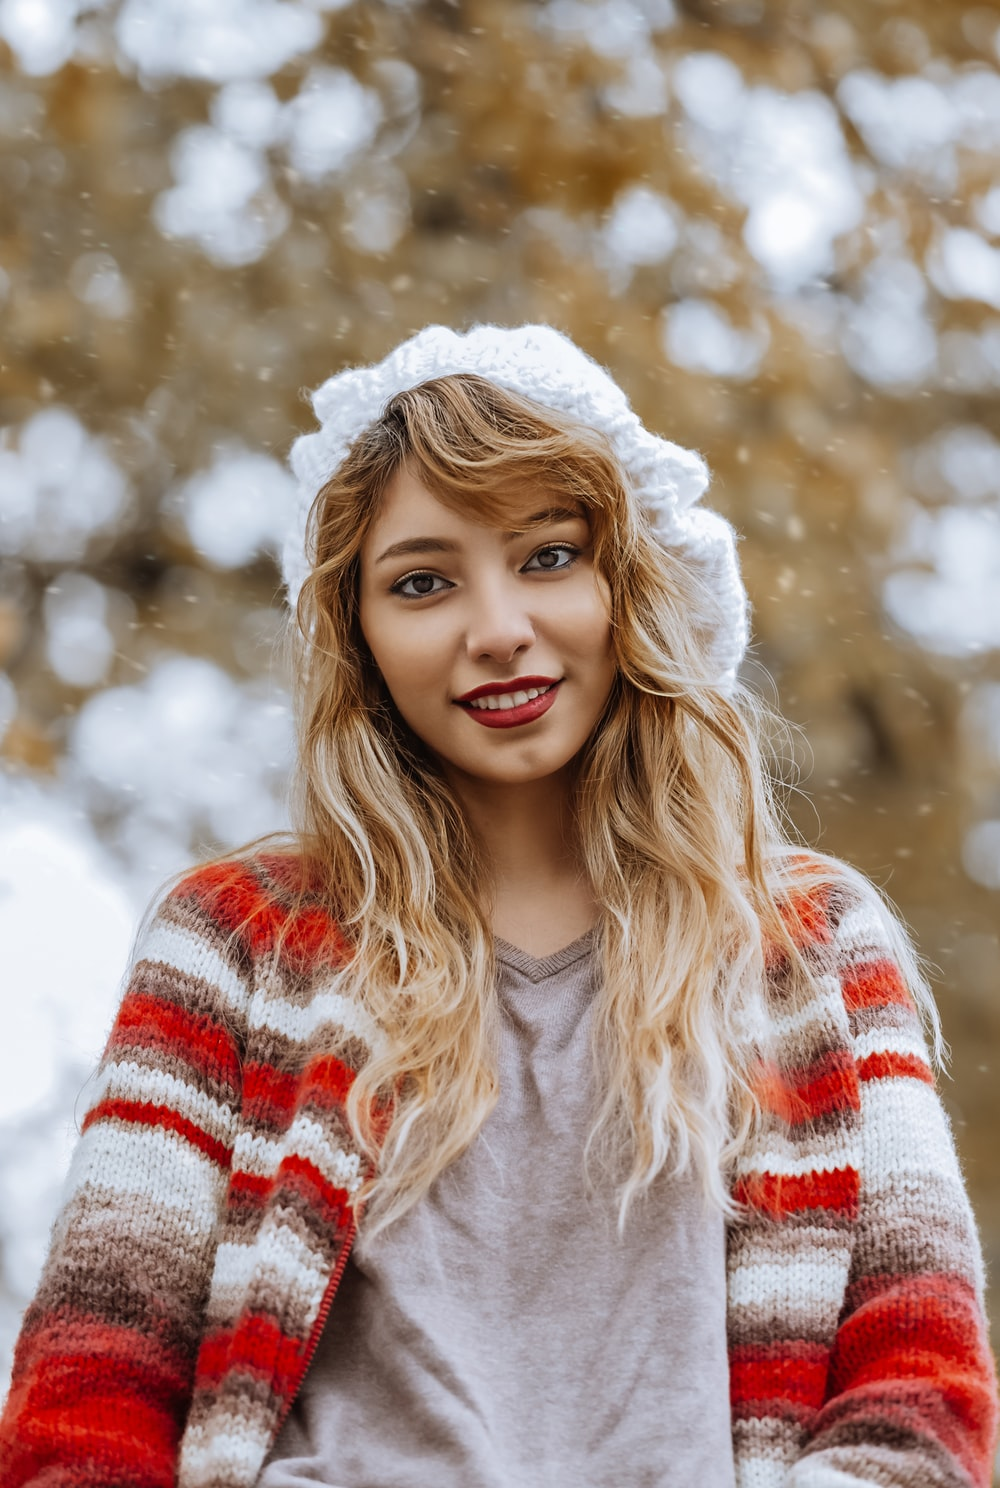 Girl Snow Pictures | Download Free Images on Unsplash